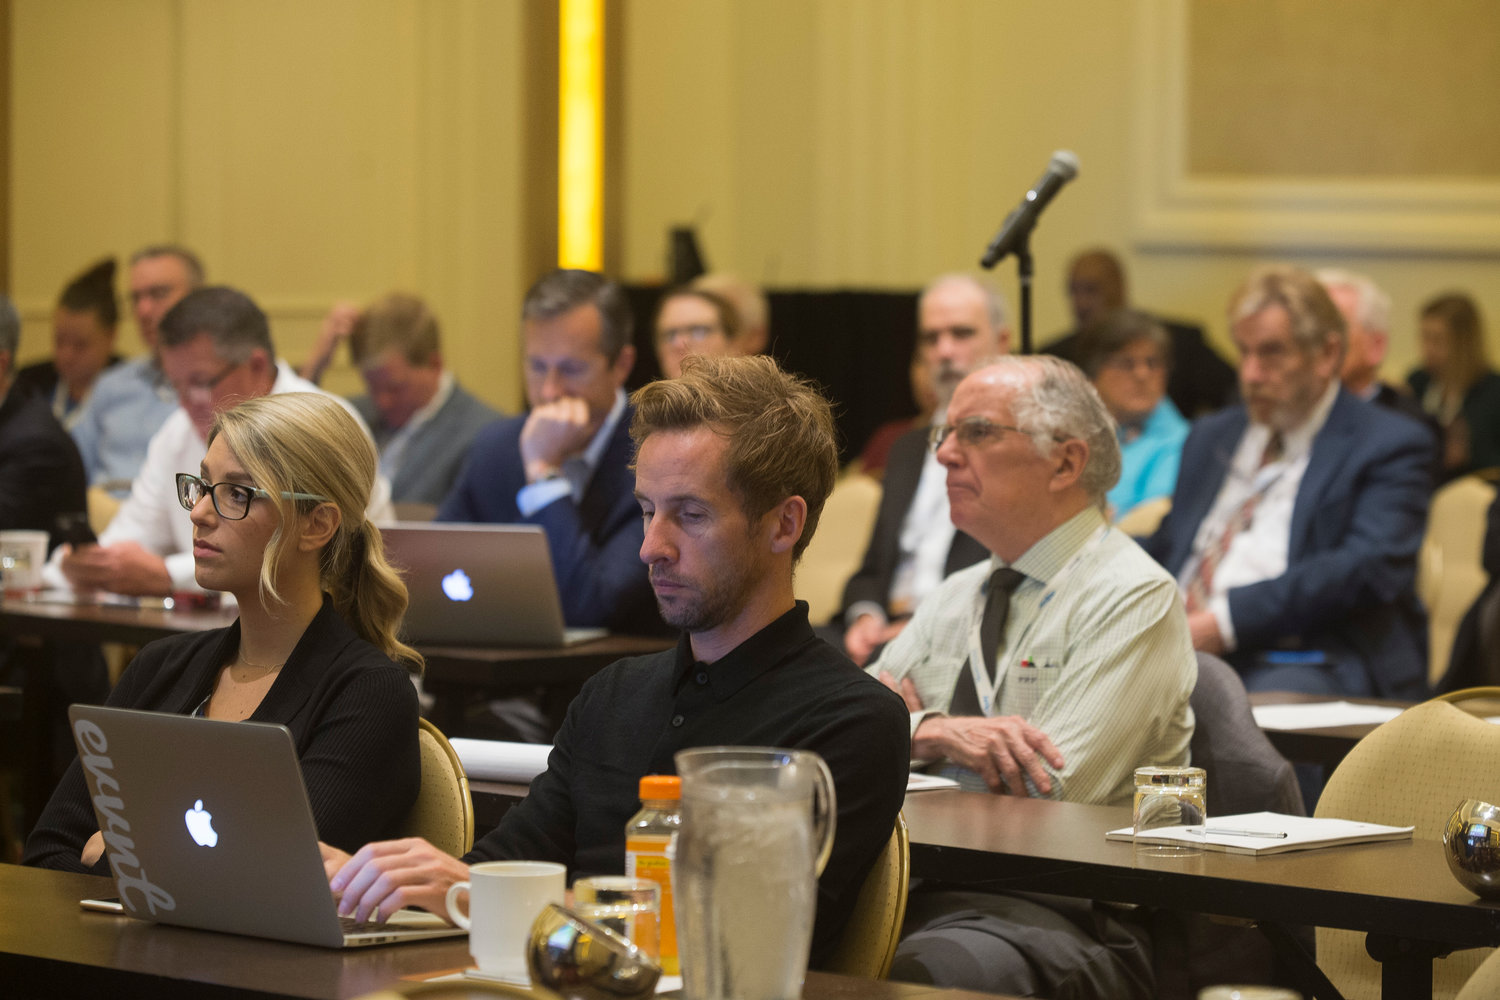 The annual meeting attracted an engaged audience that kept busy at every session taking notes on the ideas, strategies and practical tips exchanged from the podium.